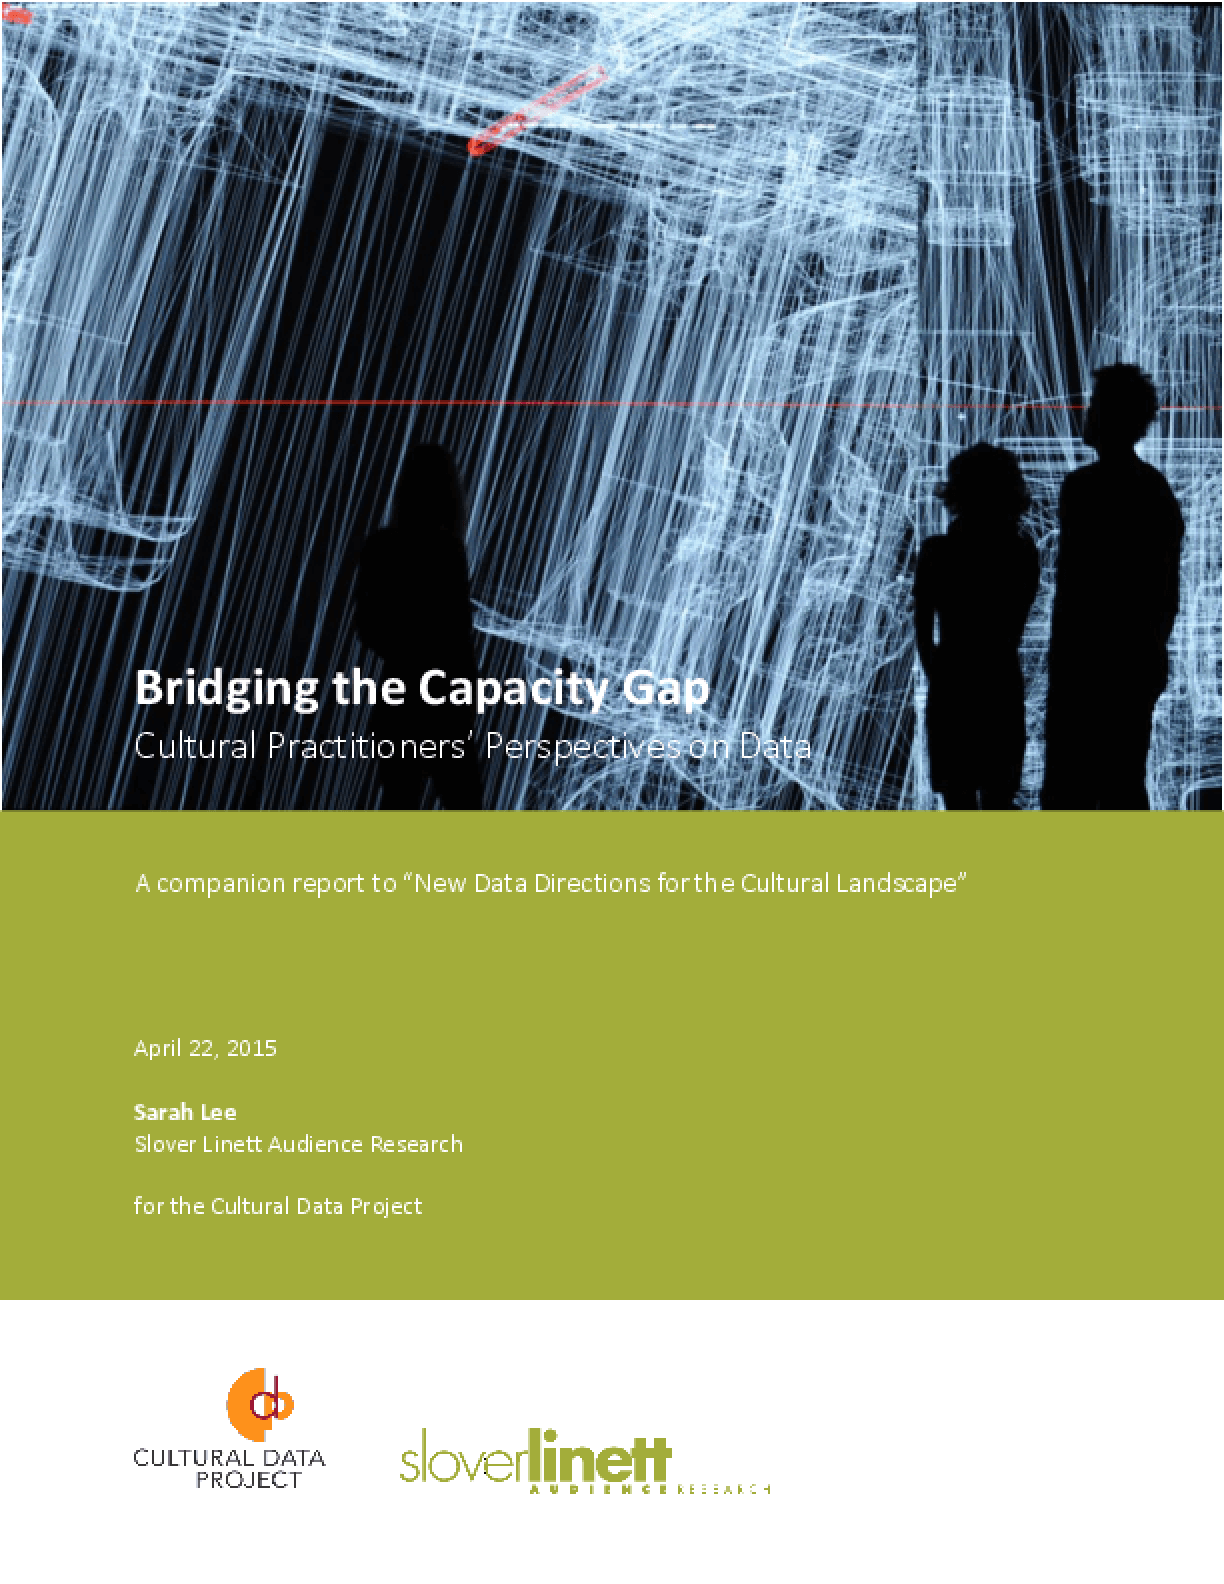 Bridging the Capacity Gap: Cultural Practitioners' Perspectives on Data